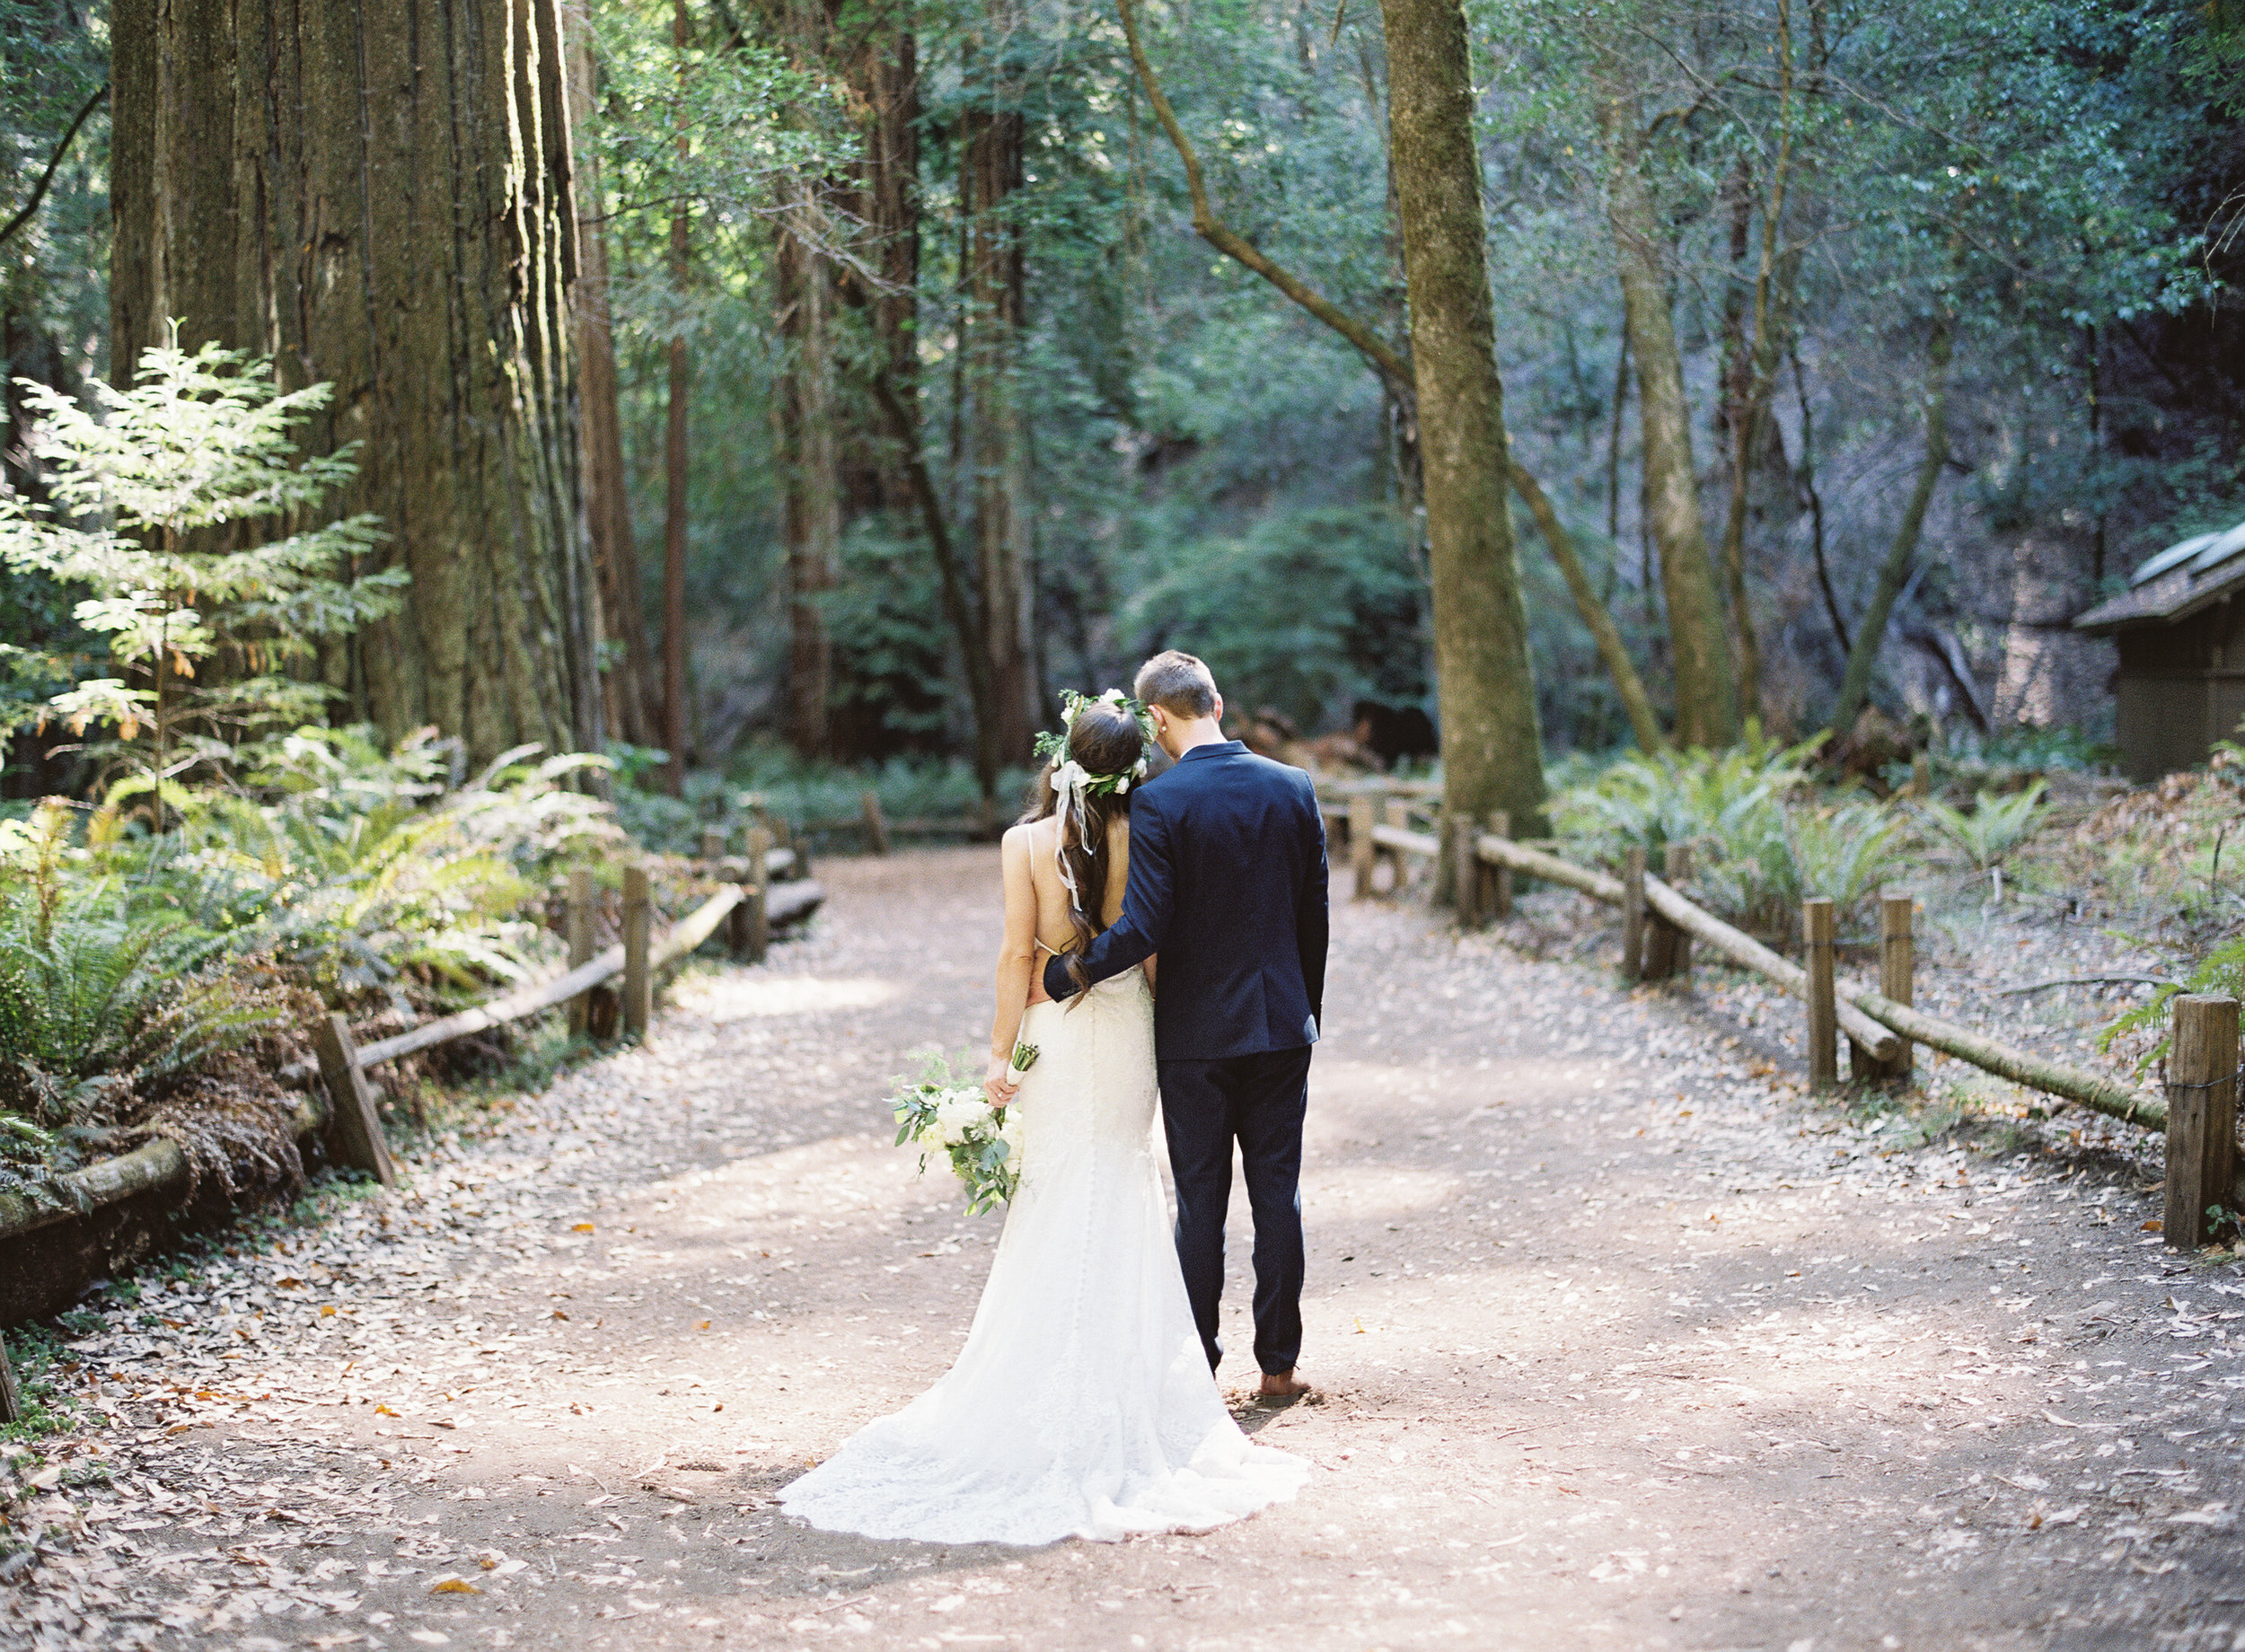 Meghan Mehan Photography | California Wedding Photographer | Napa California Wedding Photographer 101.jpg